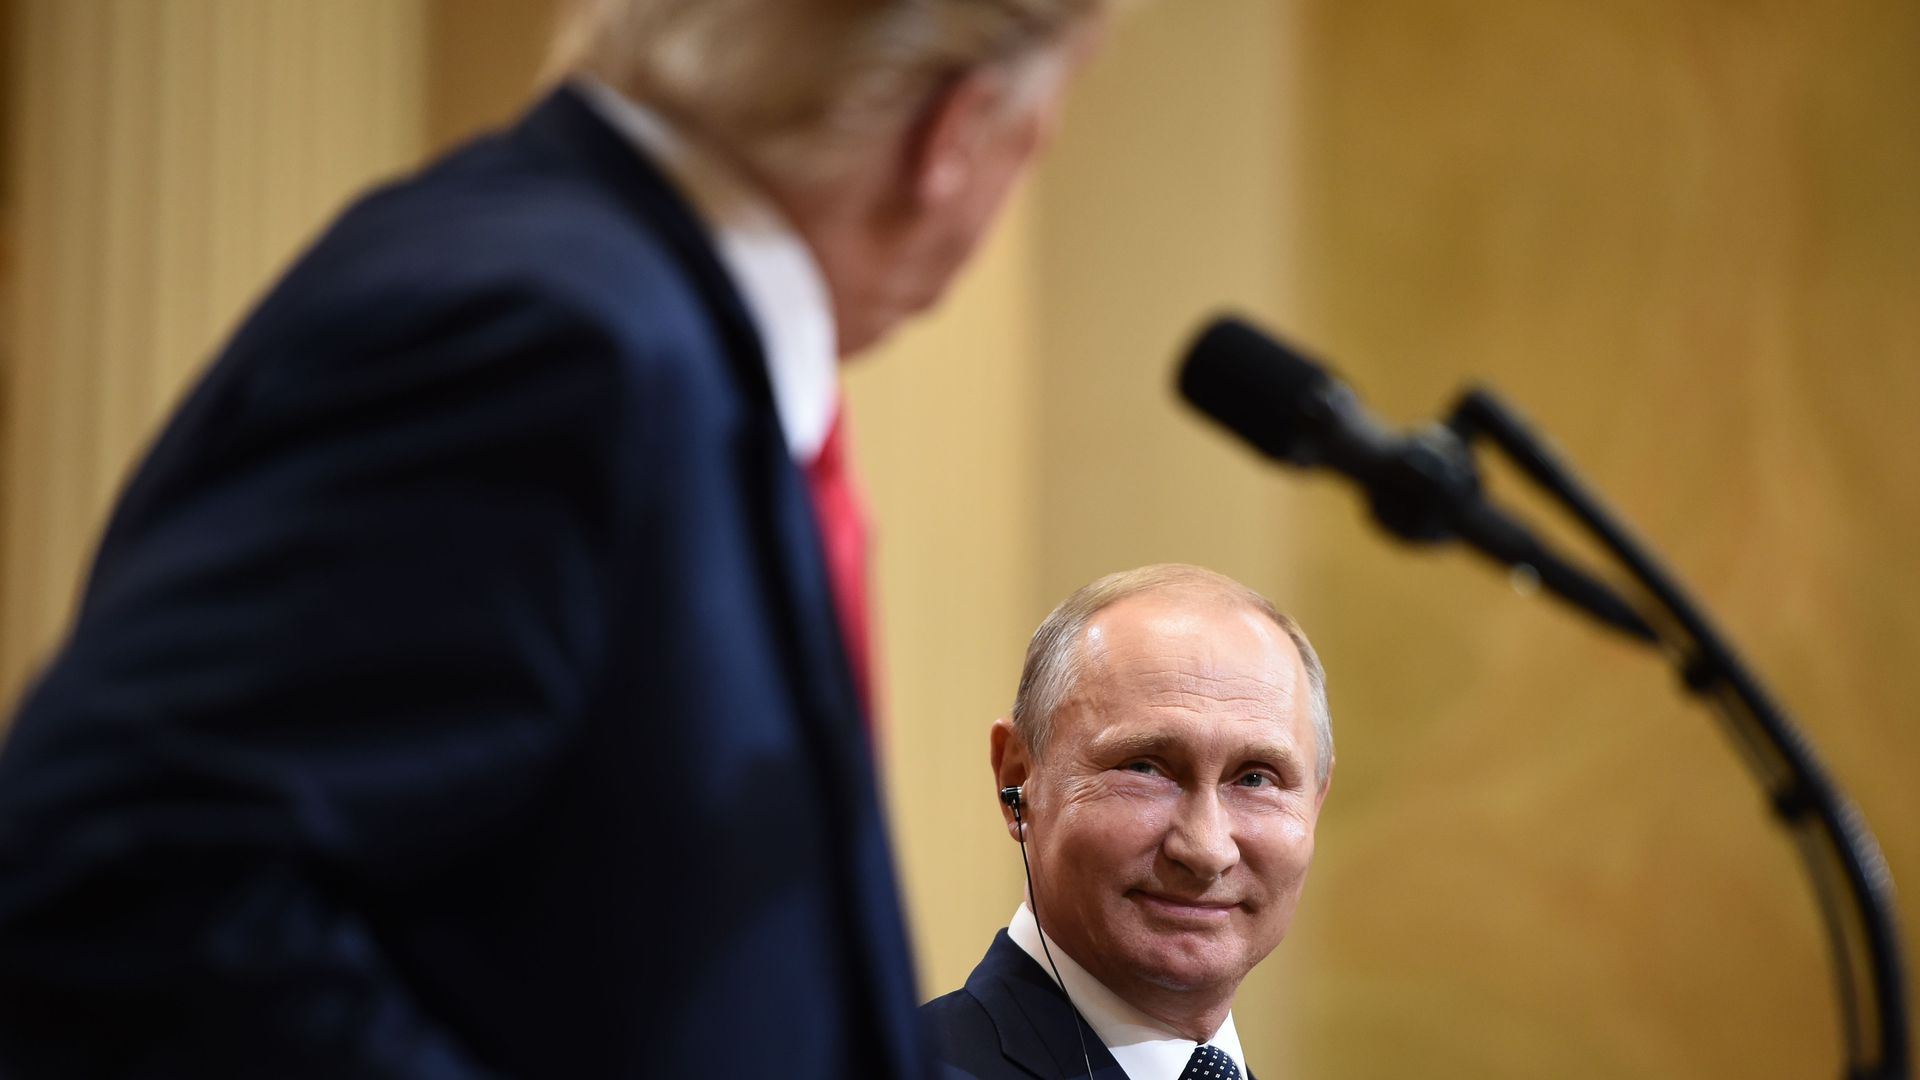 Vladimir Putin smiles at Trump, who looks at him over his podium.